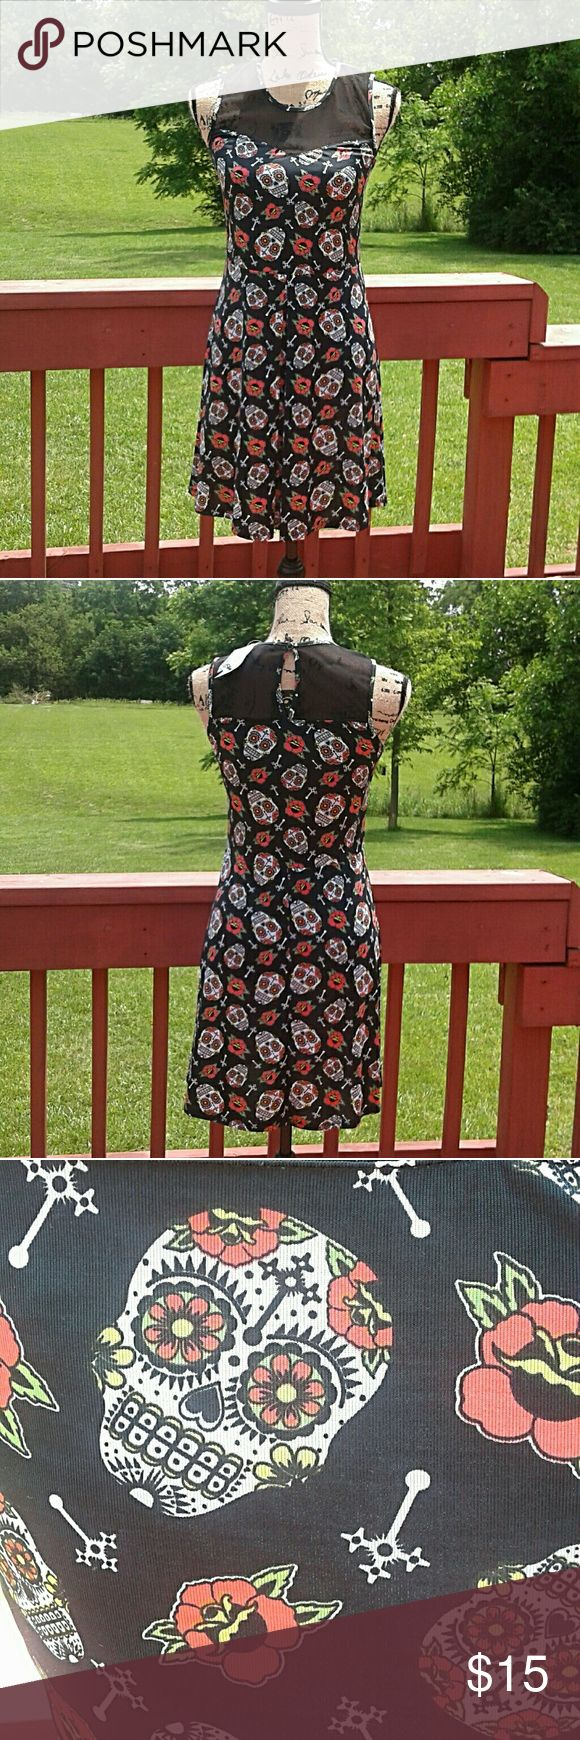 NWT Hot Topic sugar skull dress Cute black dress with sugar skulls pattern. Very flattering 95% polyesyer, 5% spandex Hot Topic Dresses